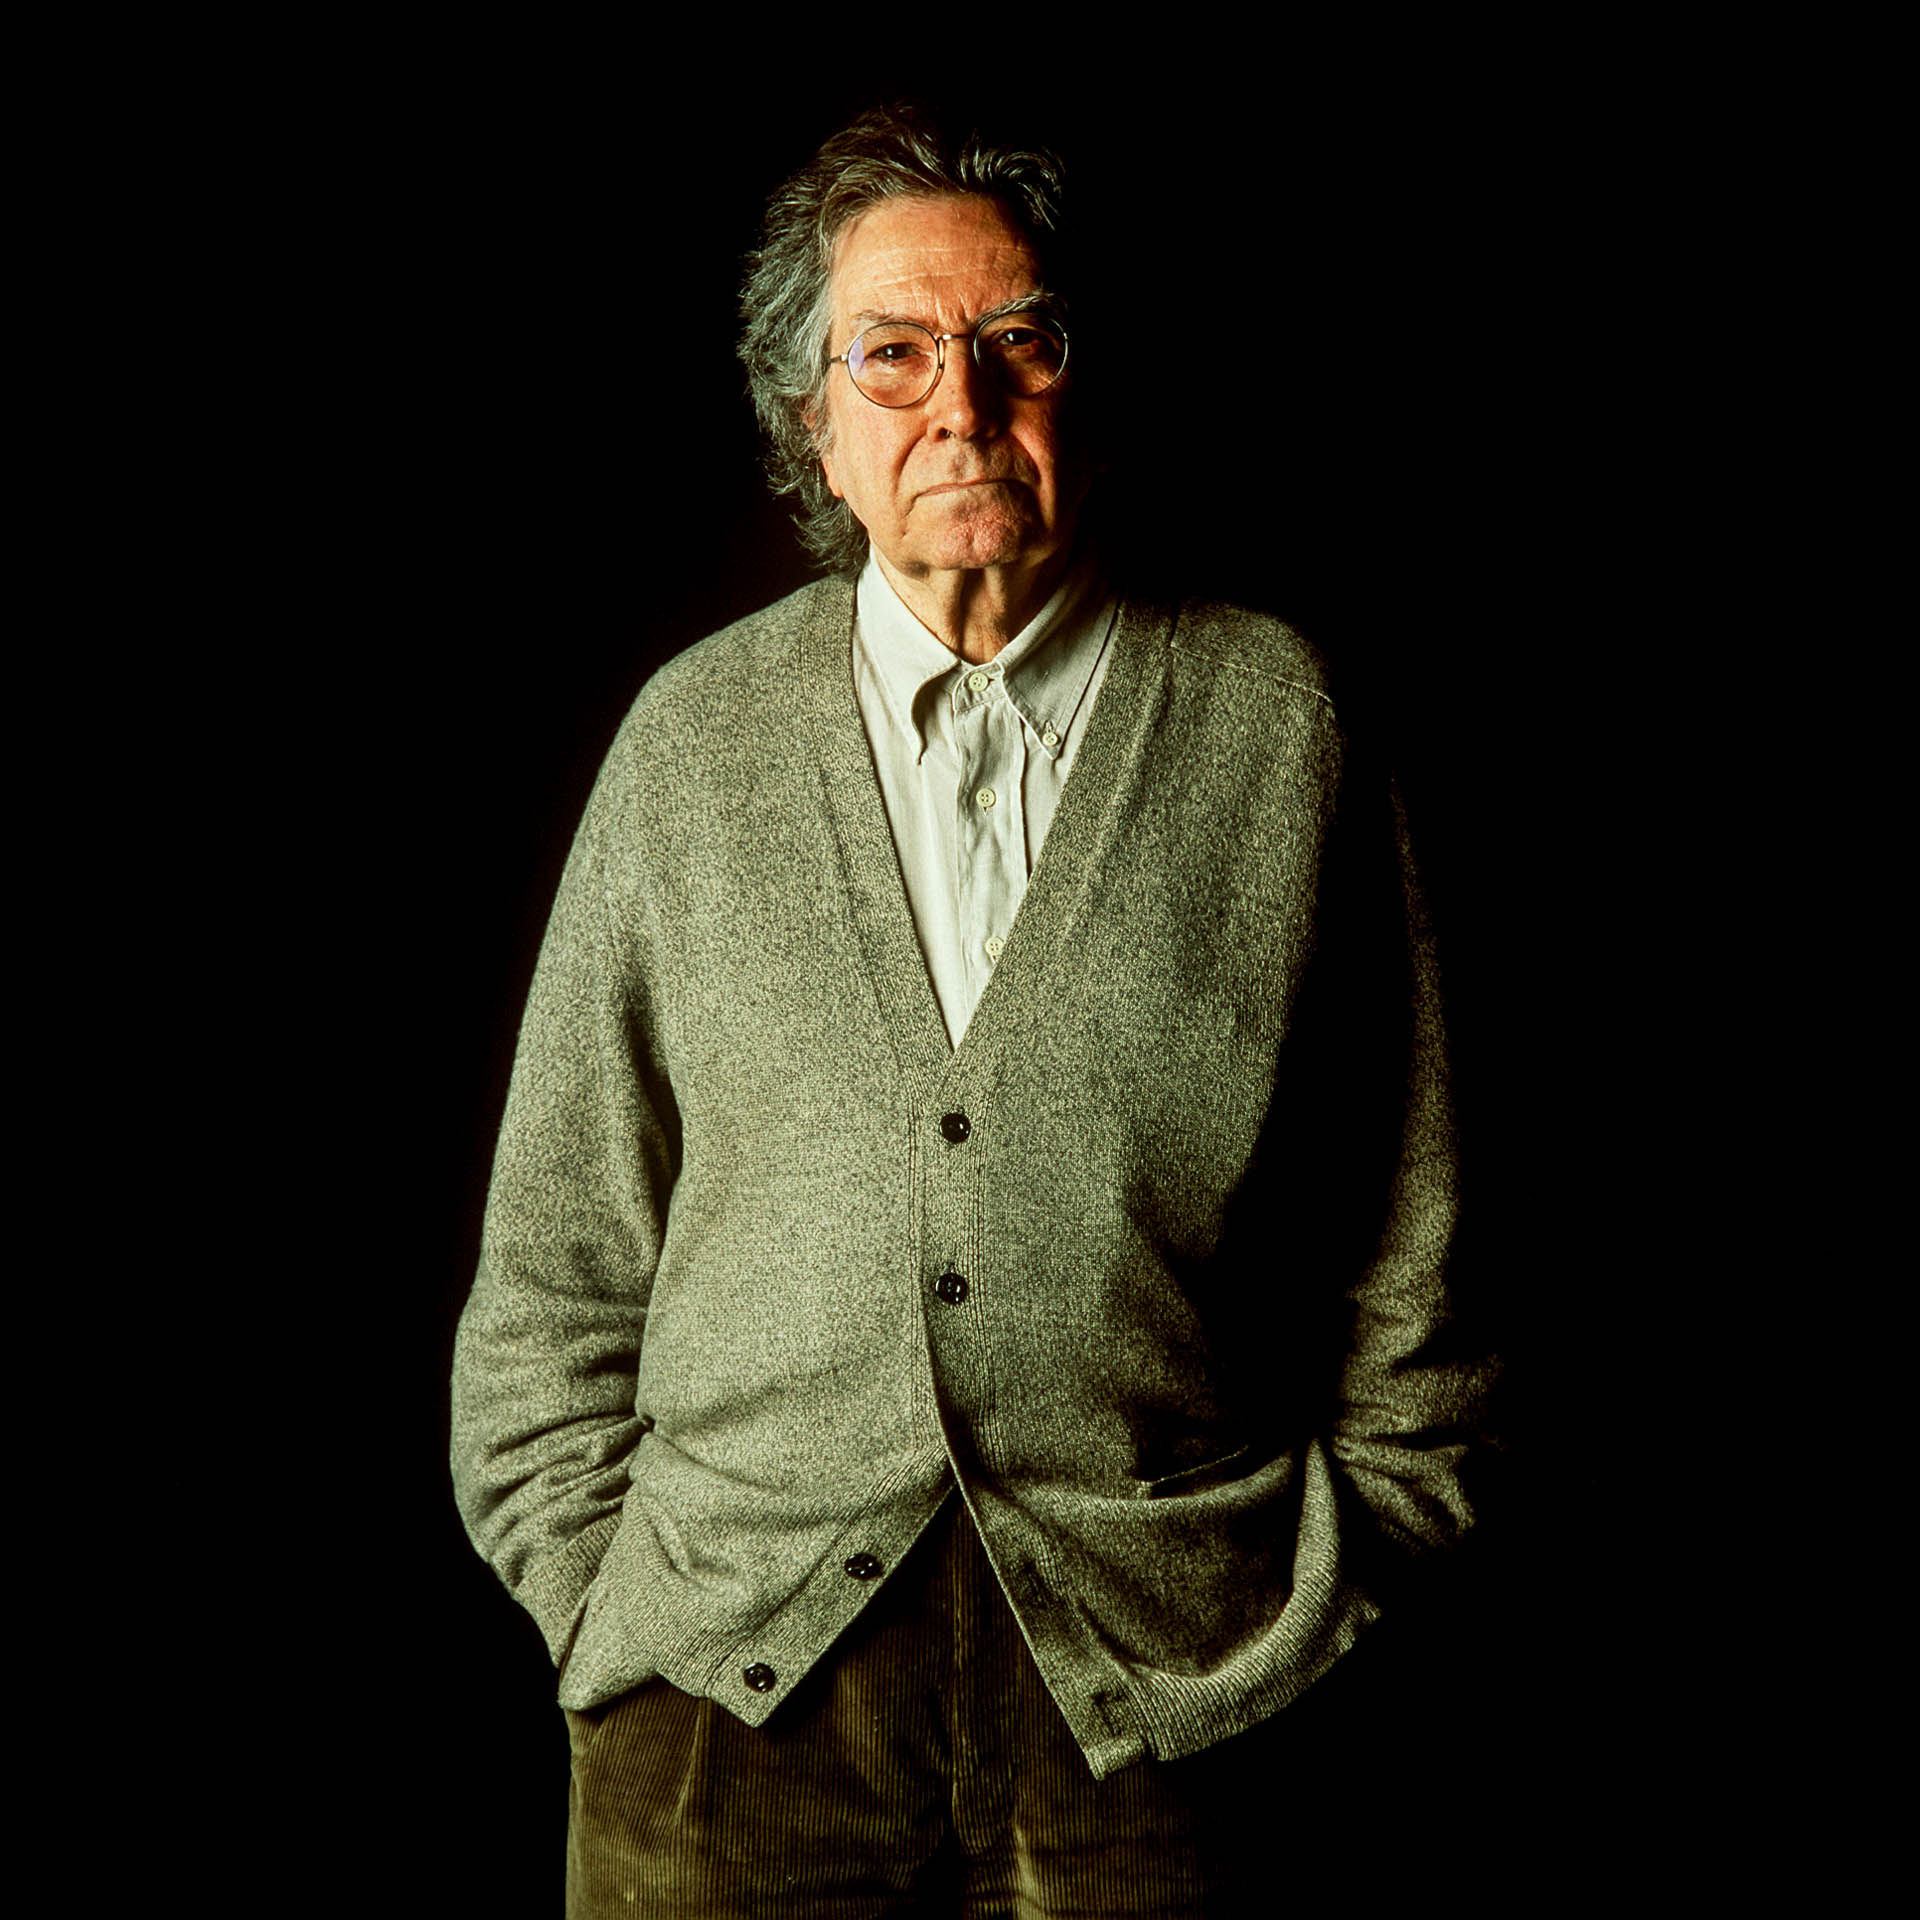 Barcelona,Spain - October 10, 2000